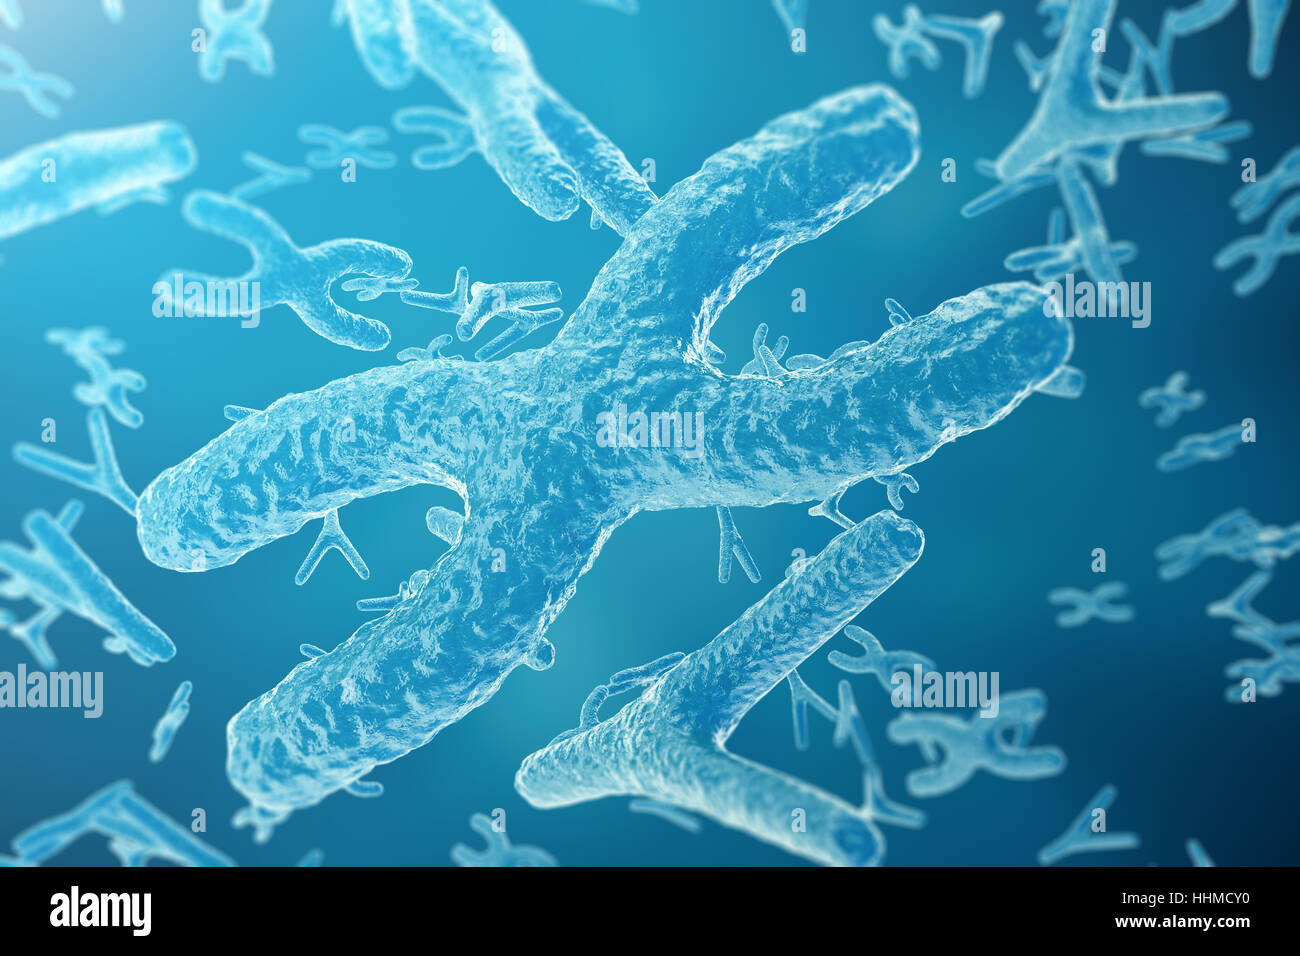 Chromosomes On Scientific Background Life And Biology Medicine Stock Photo Royalty Free Image